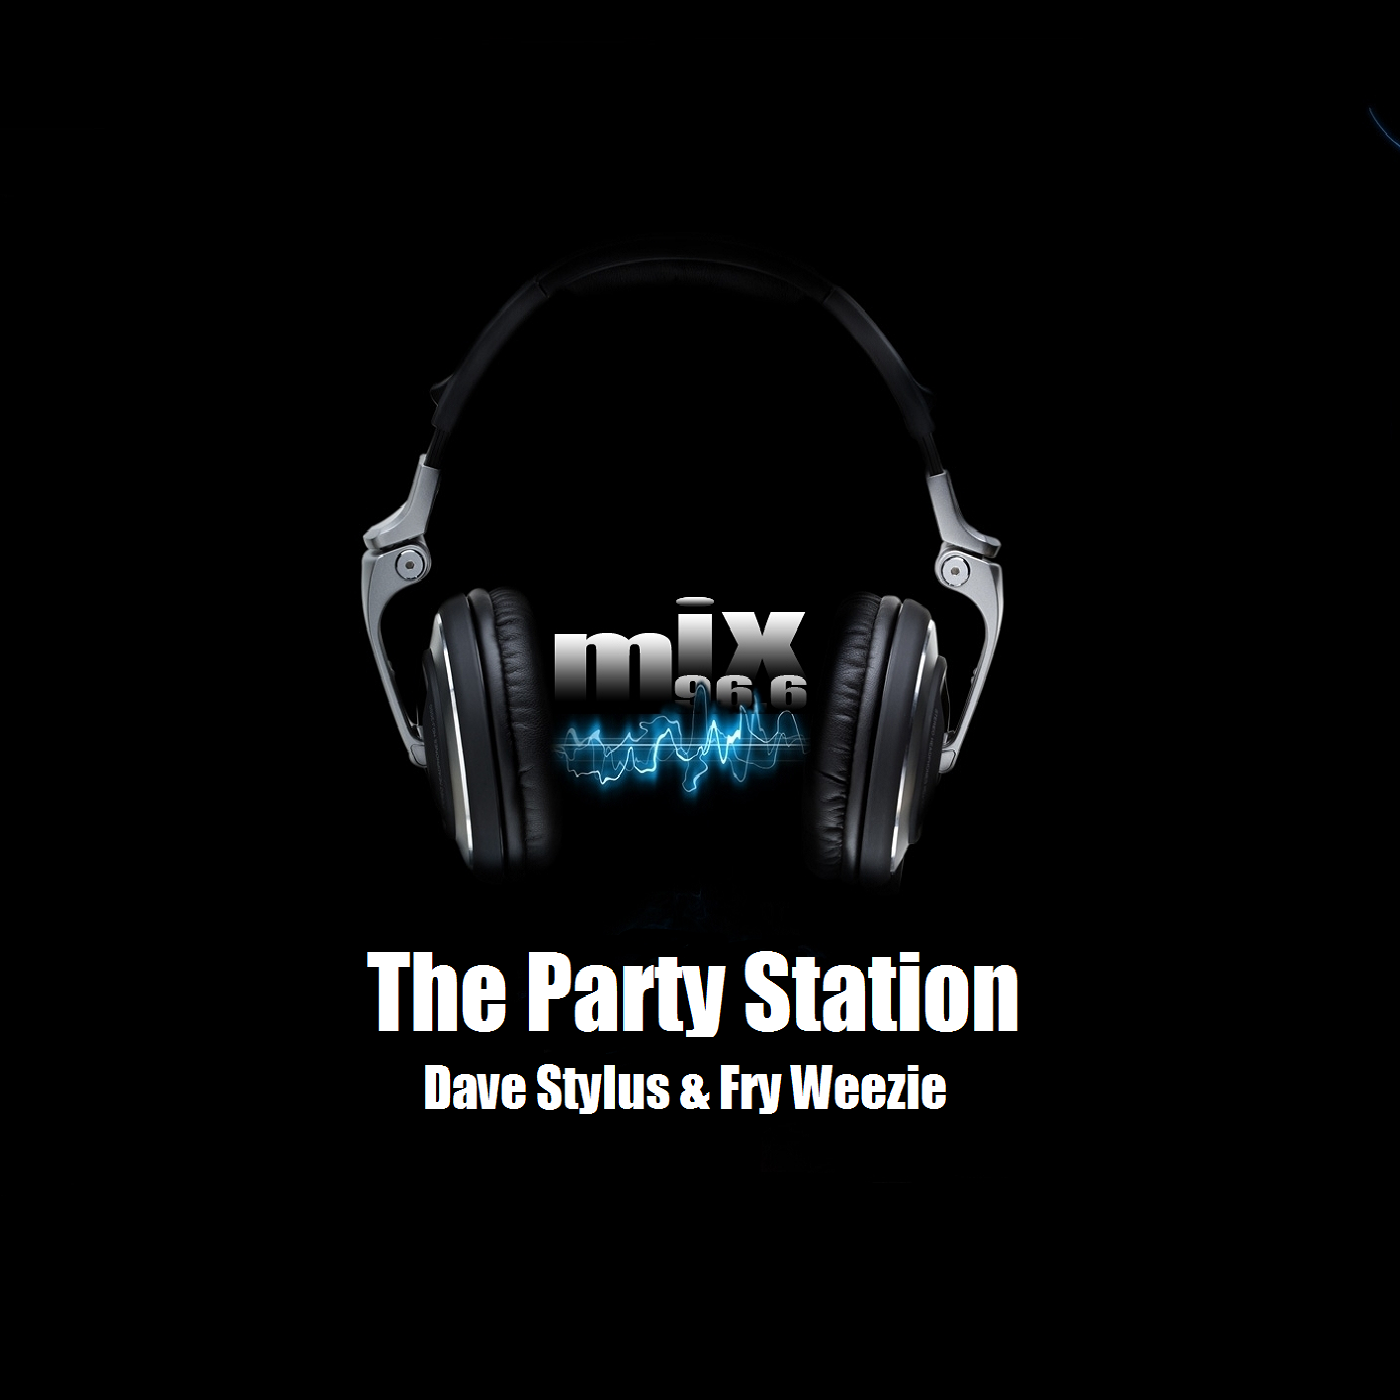 MIX 96.6 F.M. – The Party Station